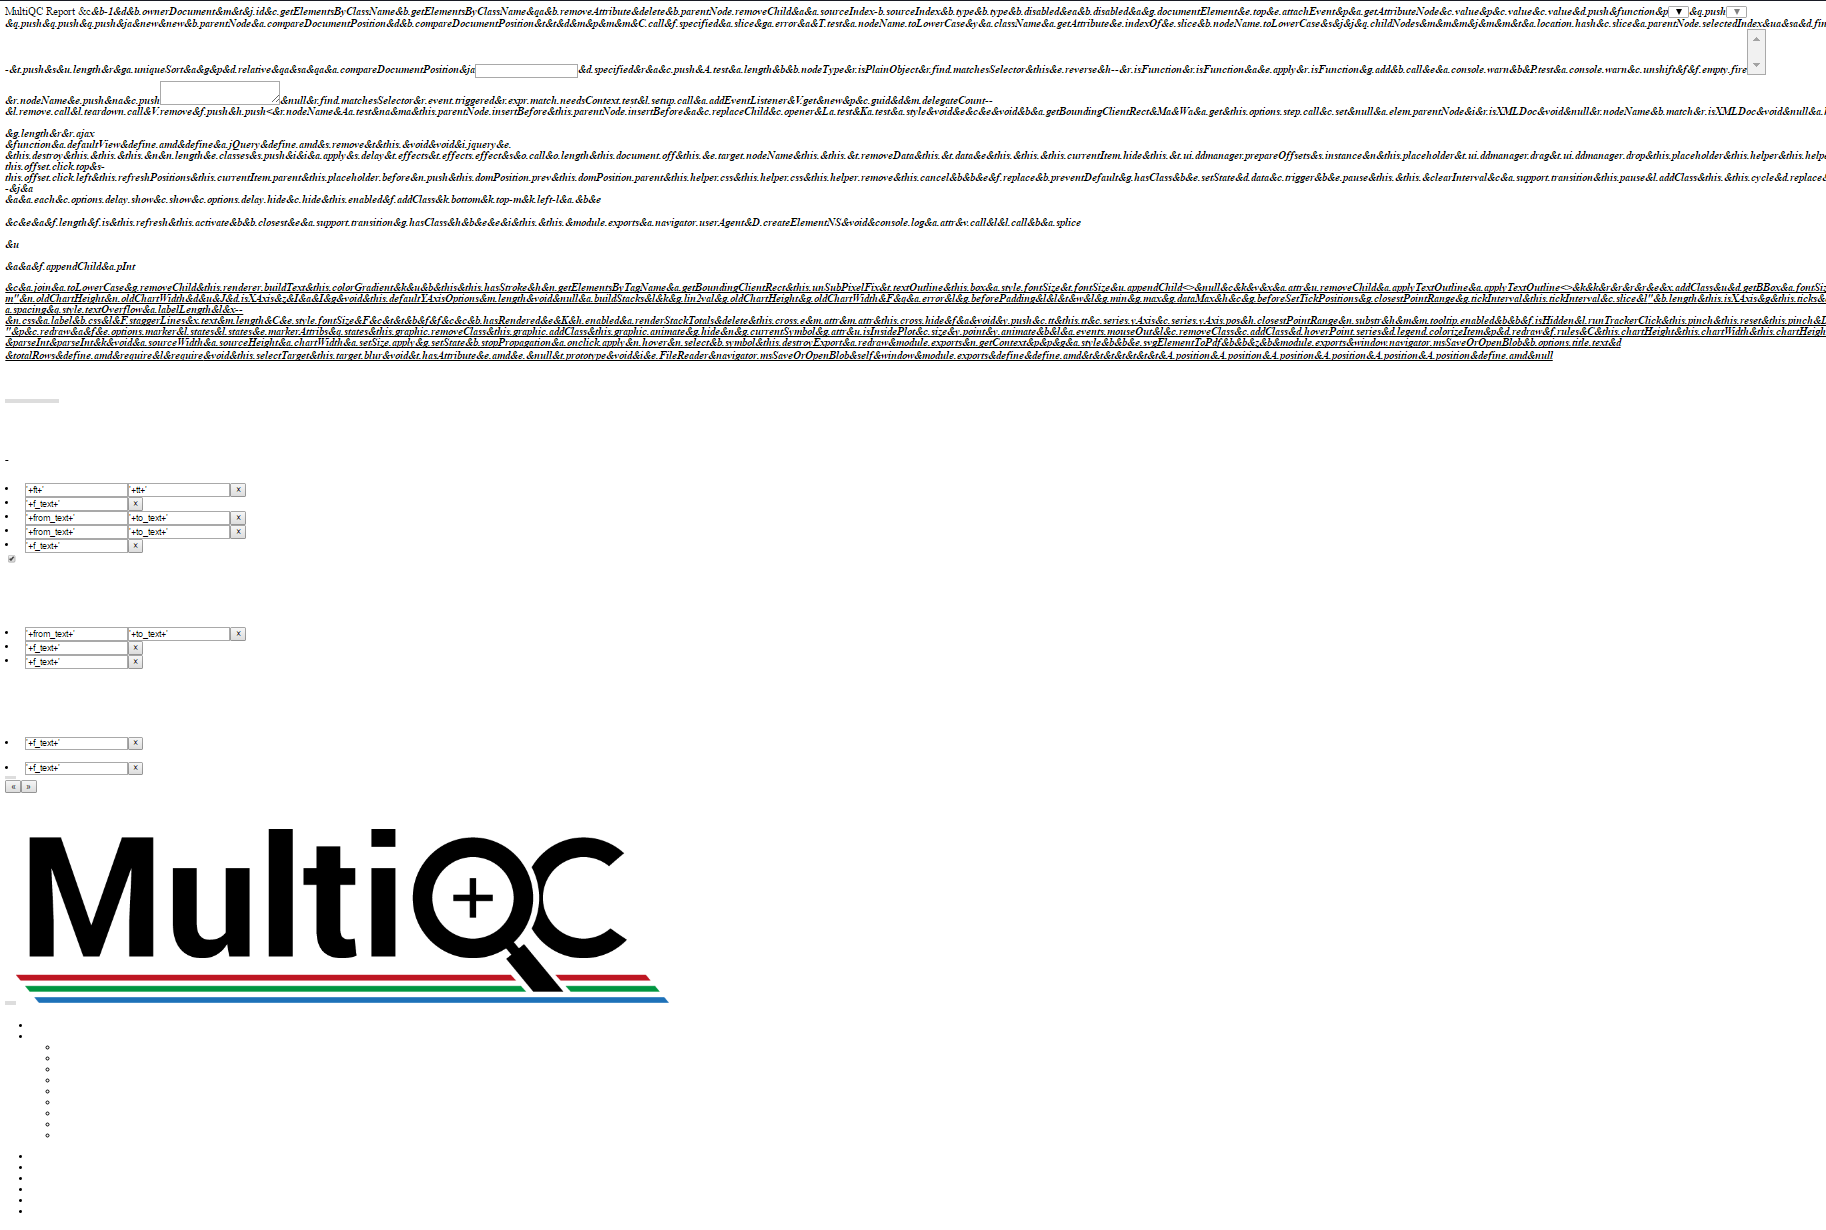 Multiqc 1 0 error on python 3 6 due to click · Issue #484 · ewels